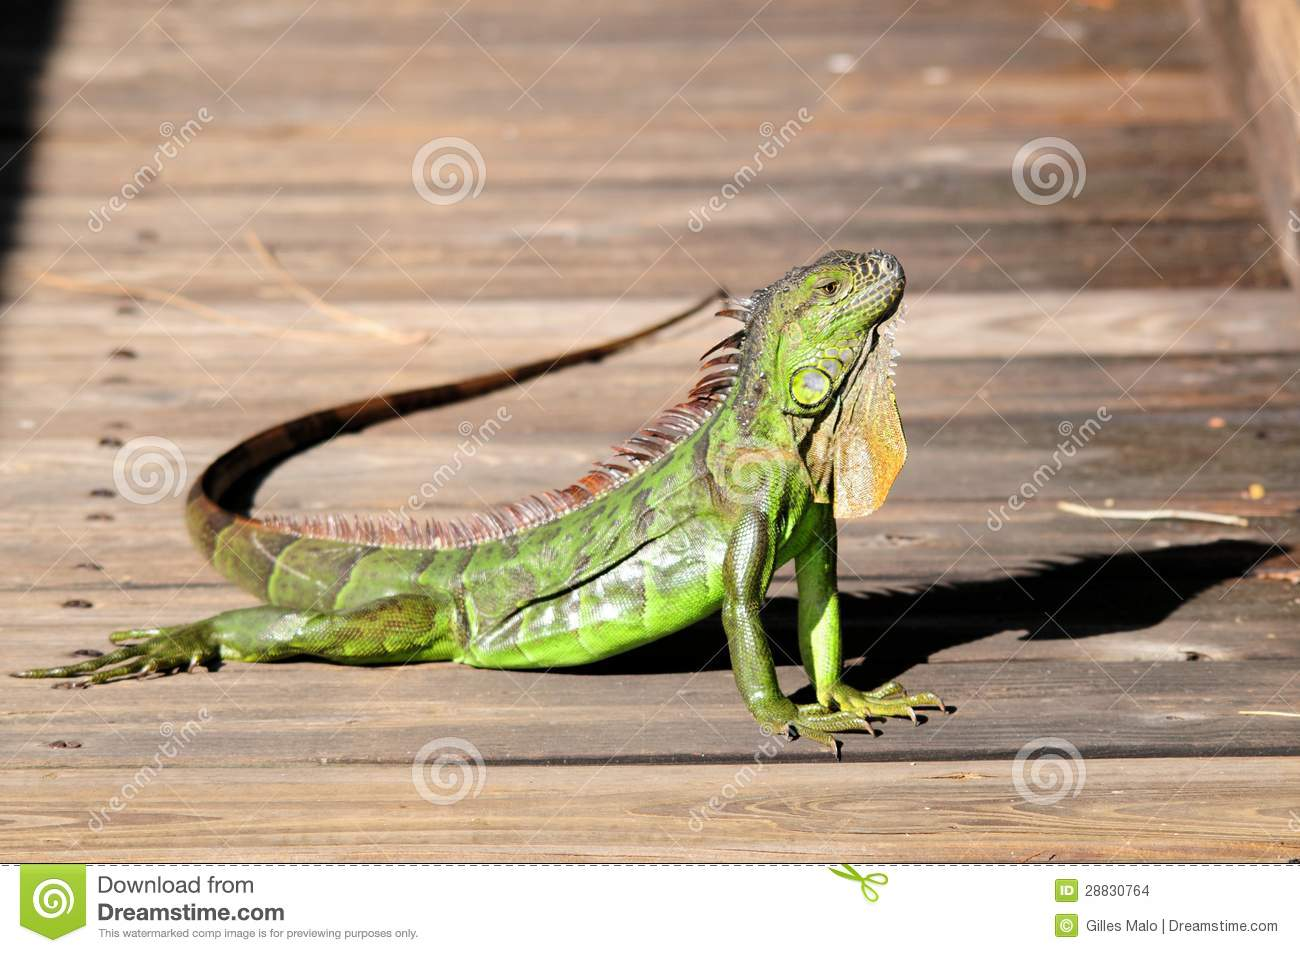 how to raise a baby iguana